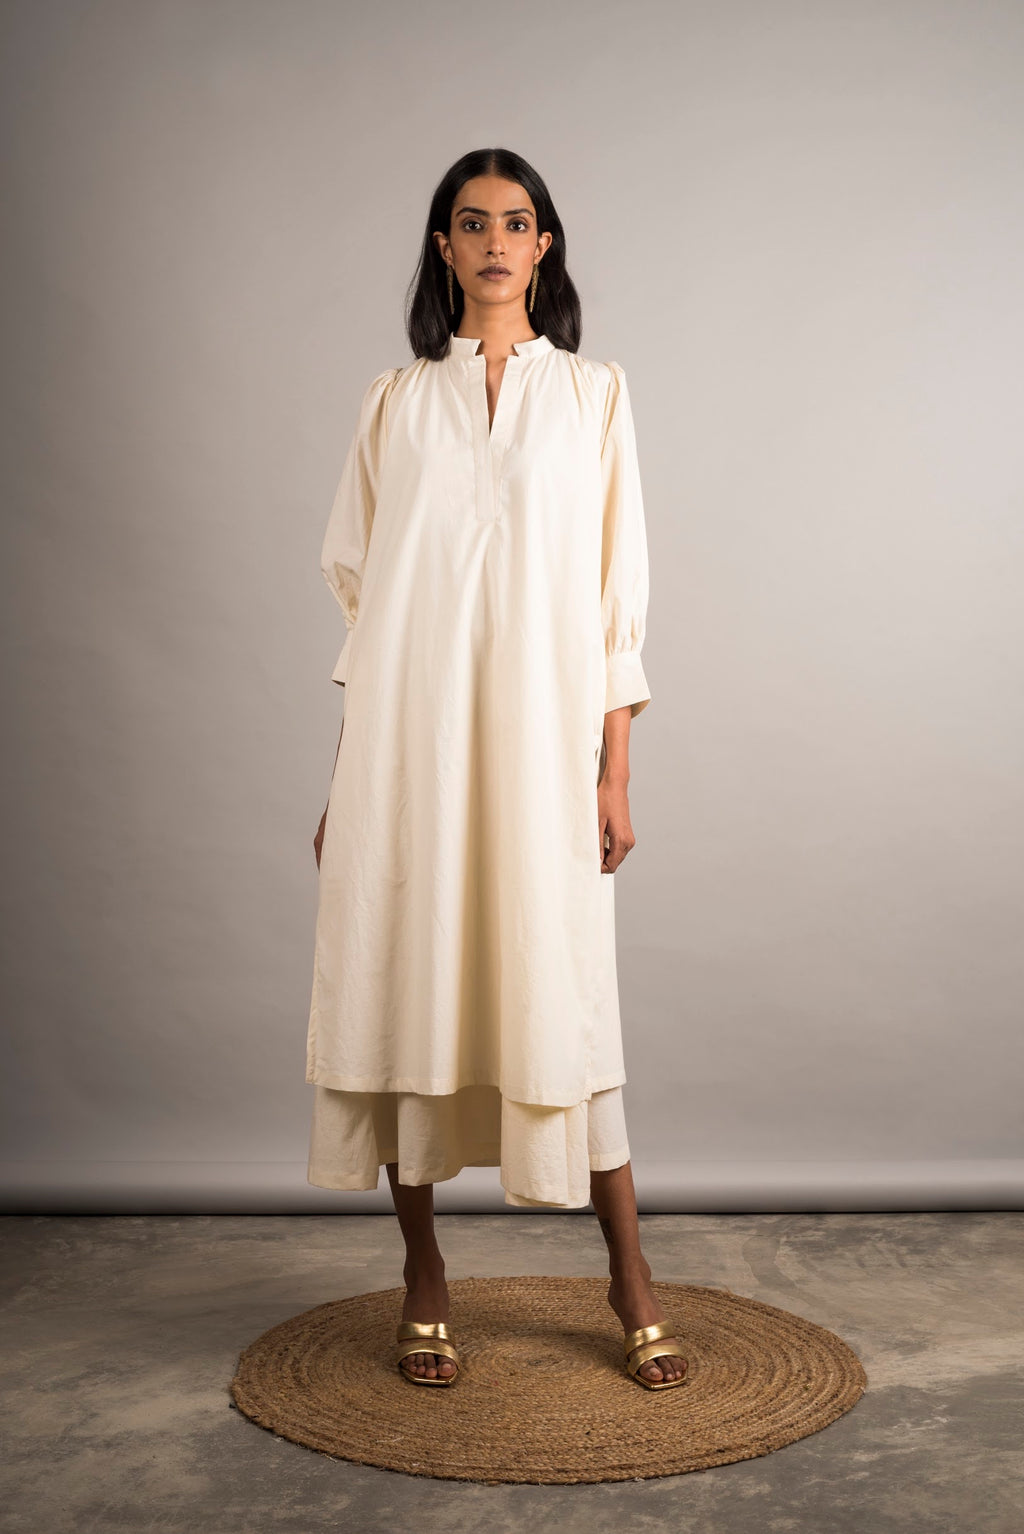 Ecru Layered Dress - Auruhfy India